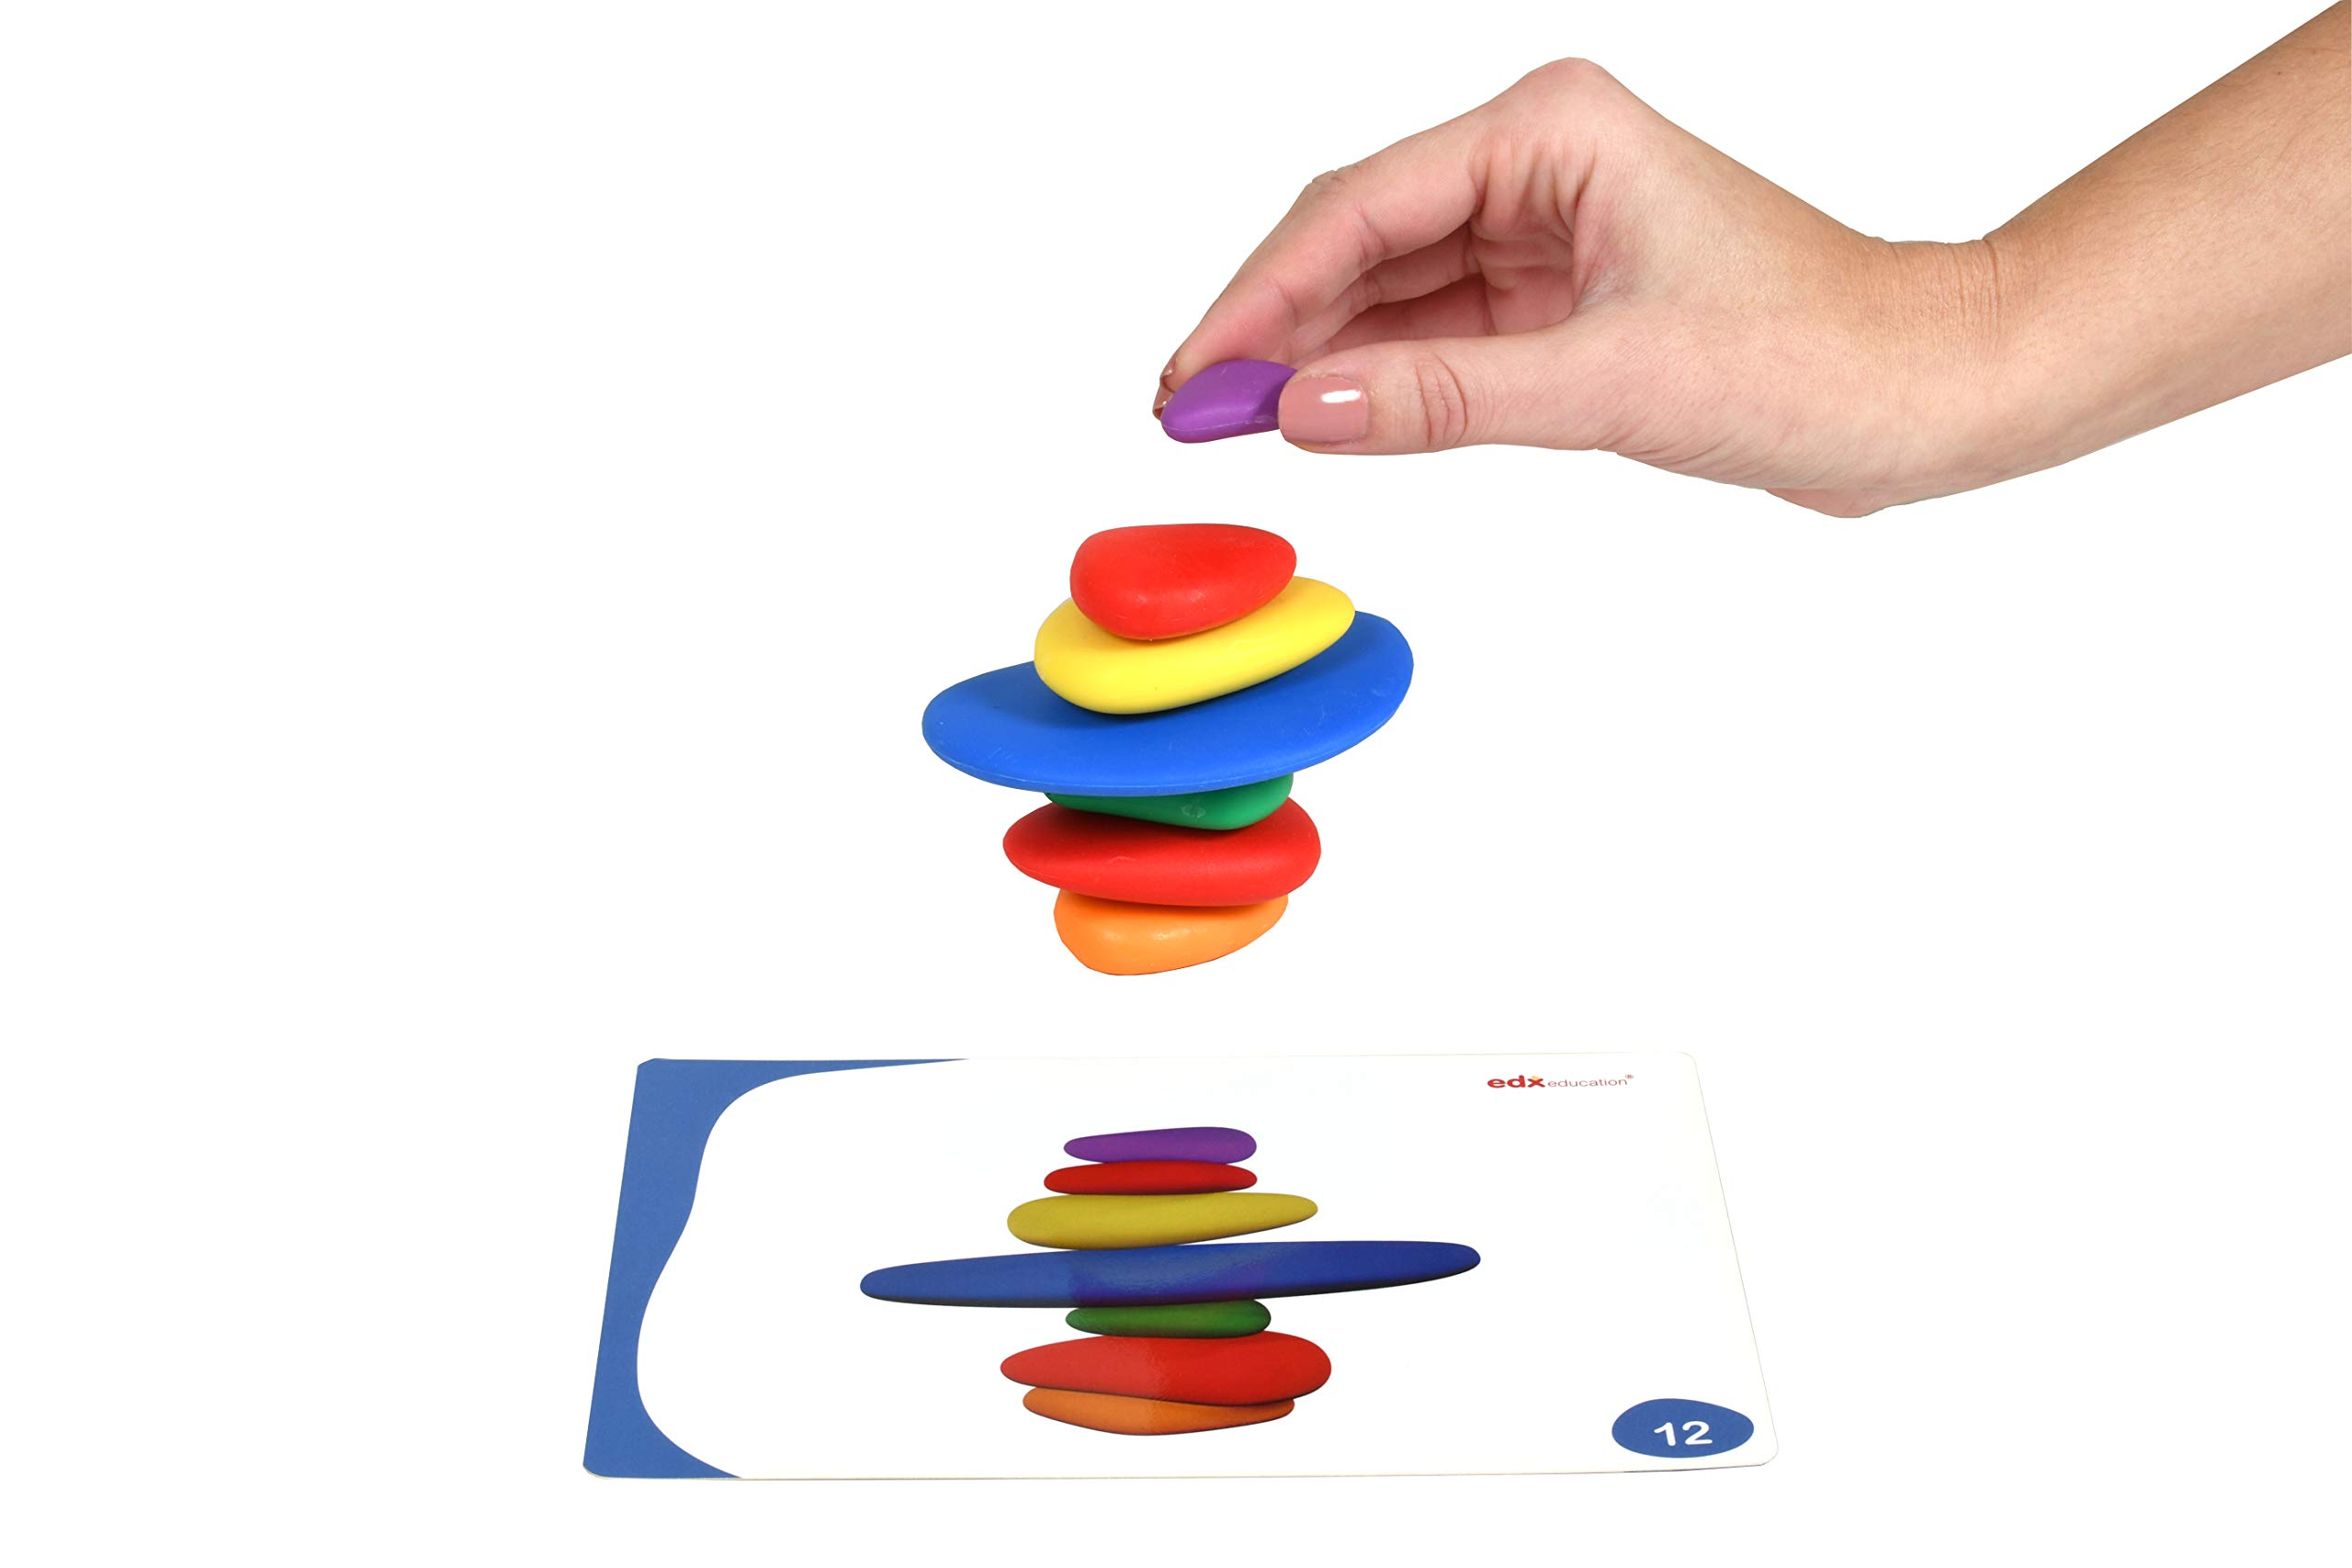 edx Education Rainbow Pebbles - Sorting and Stacking Stones by edxeducation (Image #10)